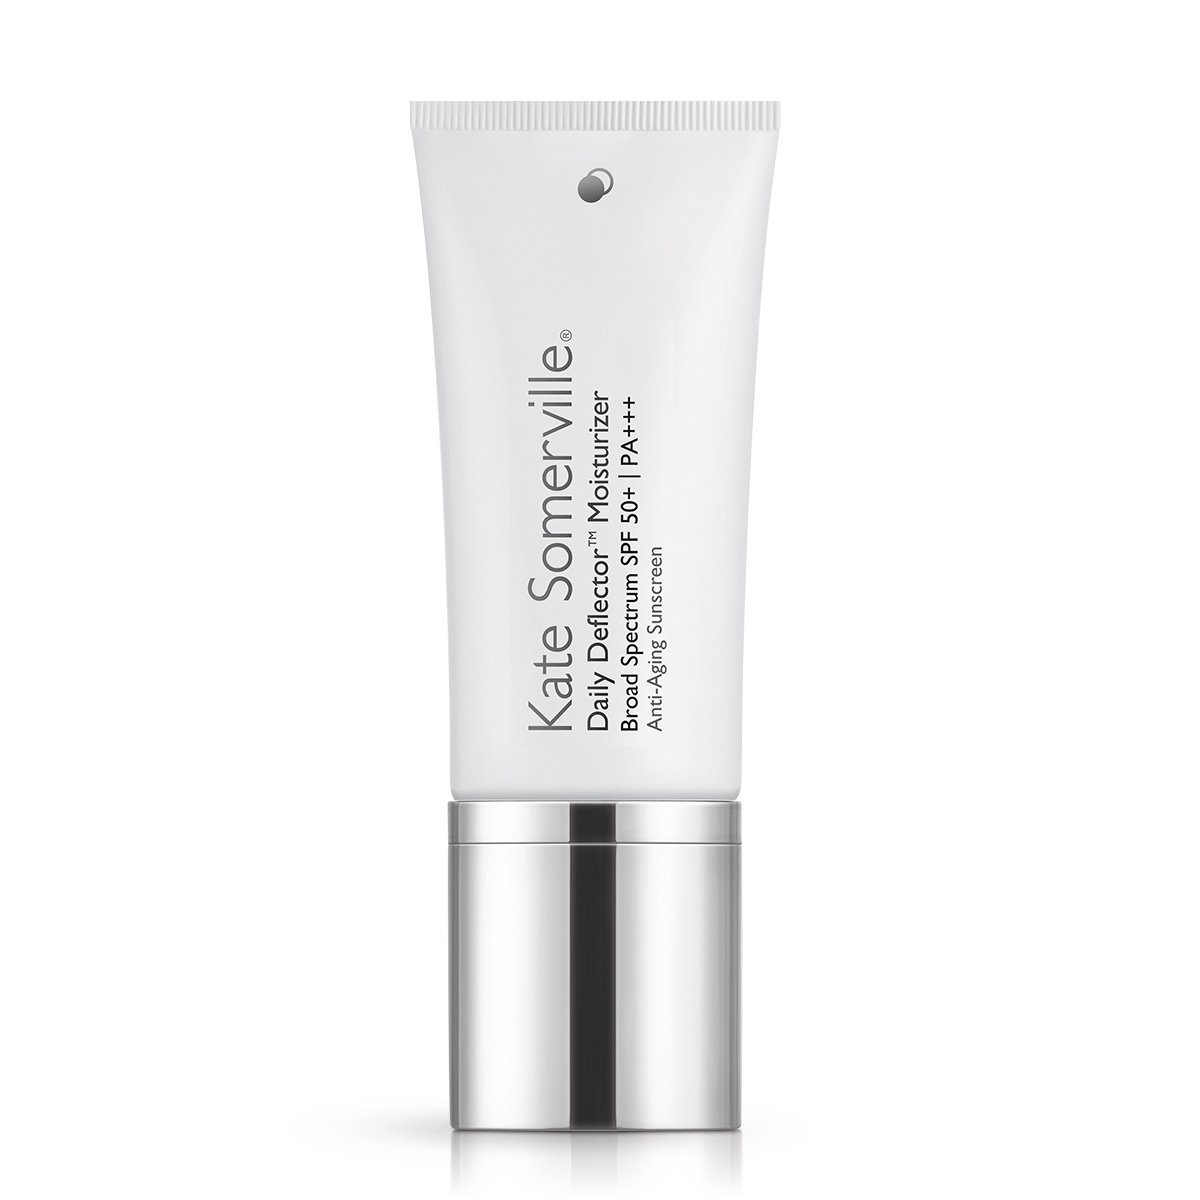 Kate Somerville Daily Deflector Moisturizer Broad Spectrum SPF 50+ PA+++ - Anti-Aging Sunscreen (1.7 Fl. Oz.)